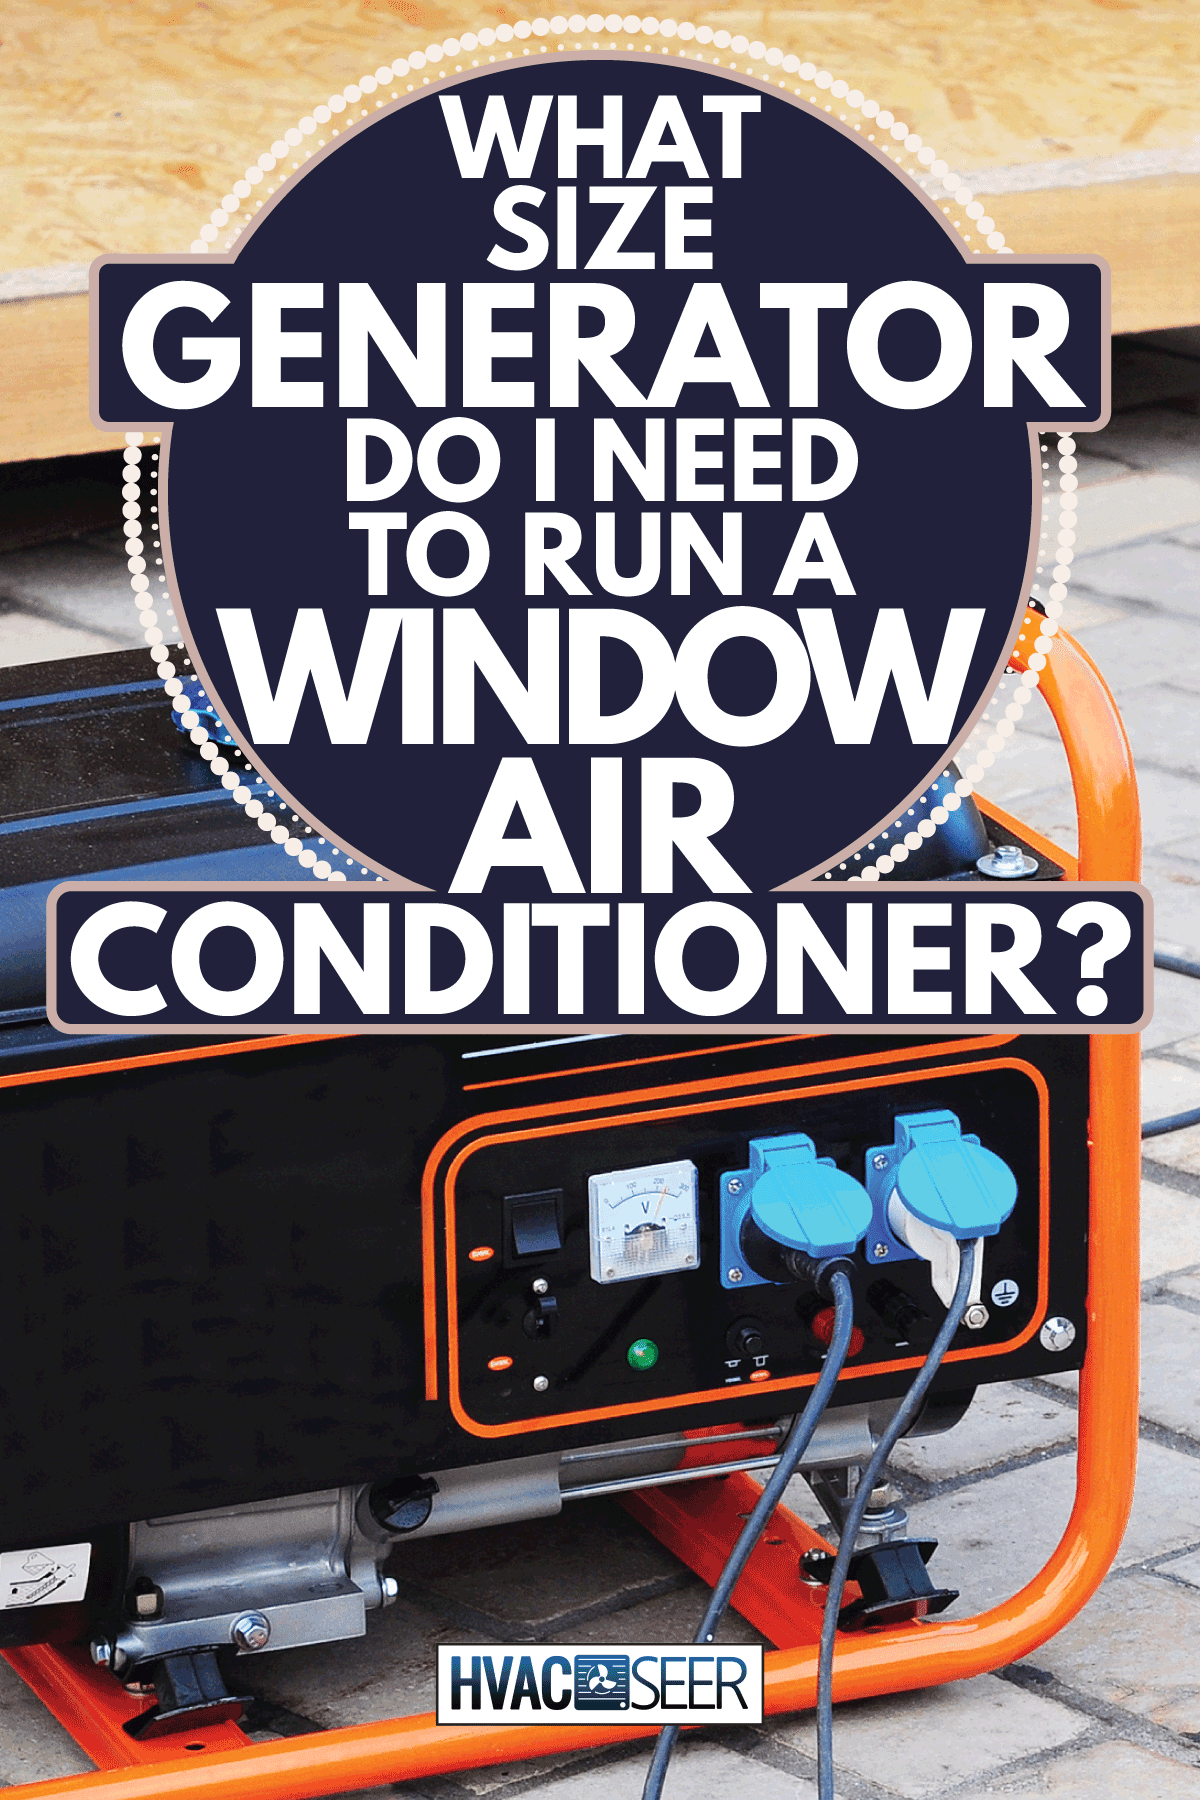 Mobile Gasoline Generator on the Building. What Size Generator Do I Need To Run A Window Air Conditioner